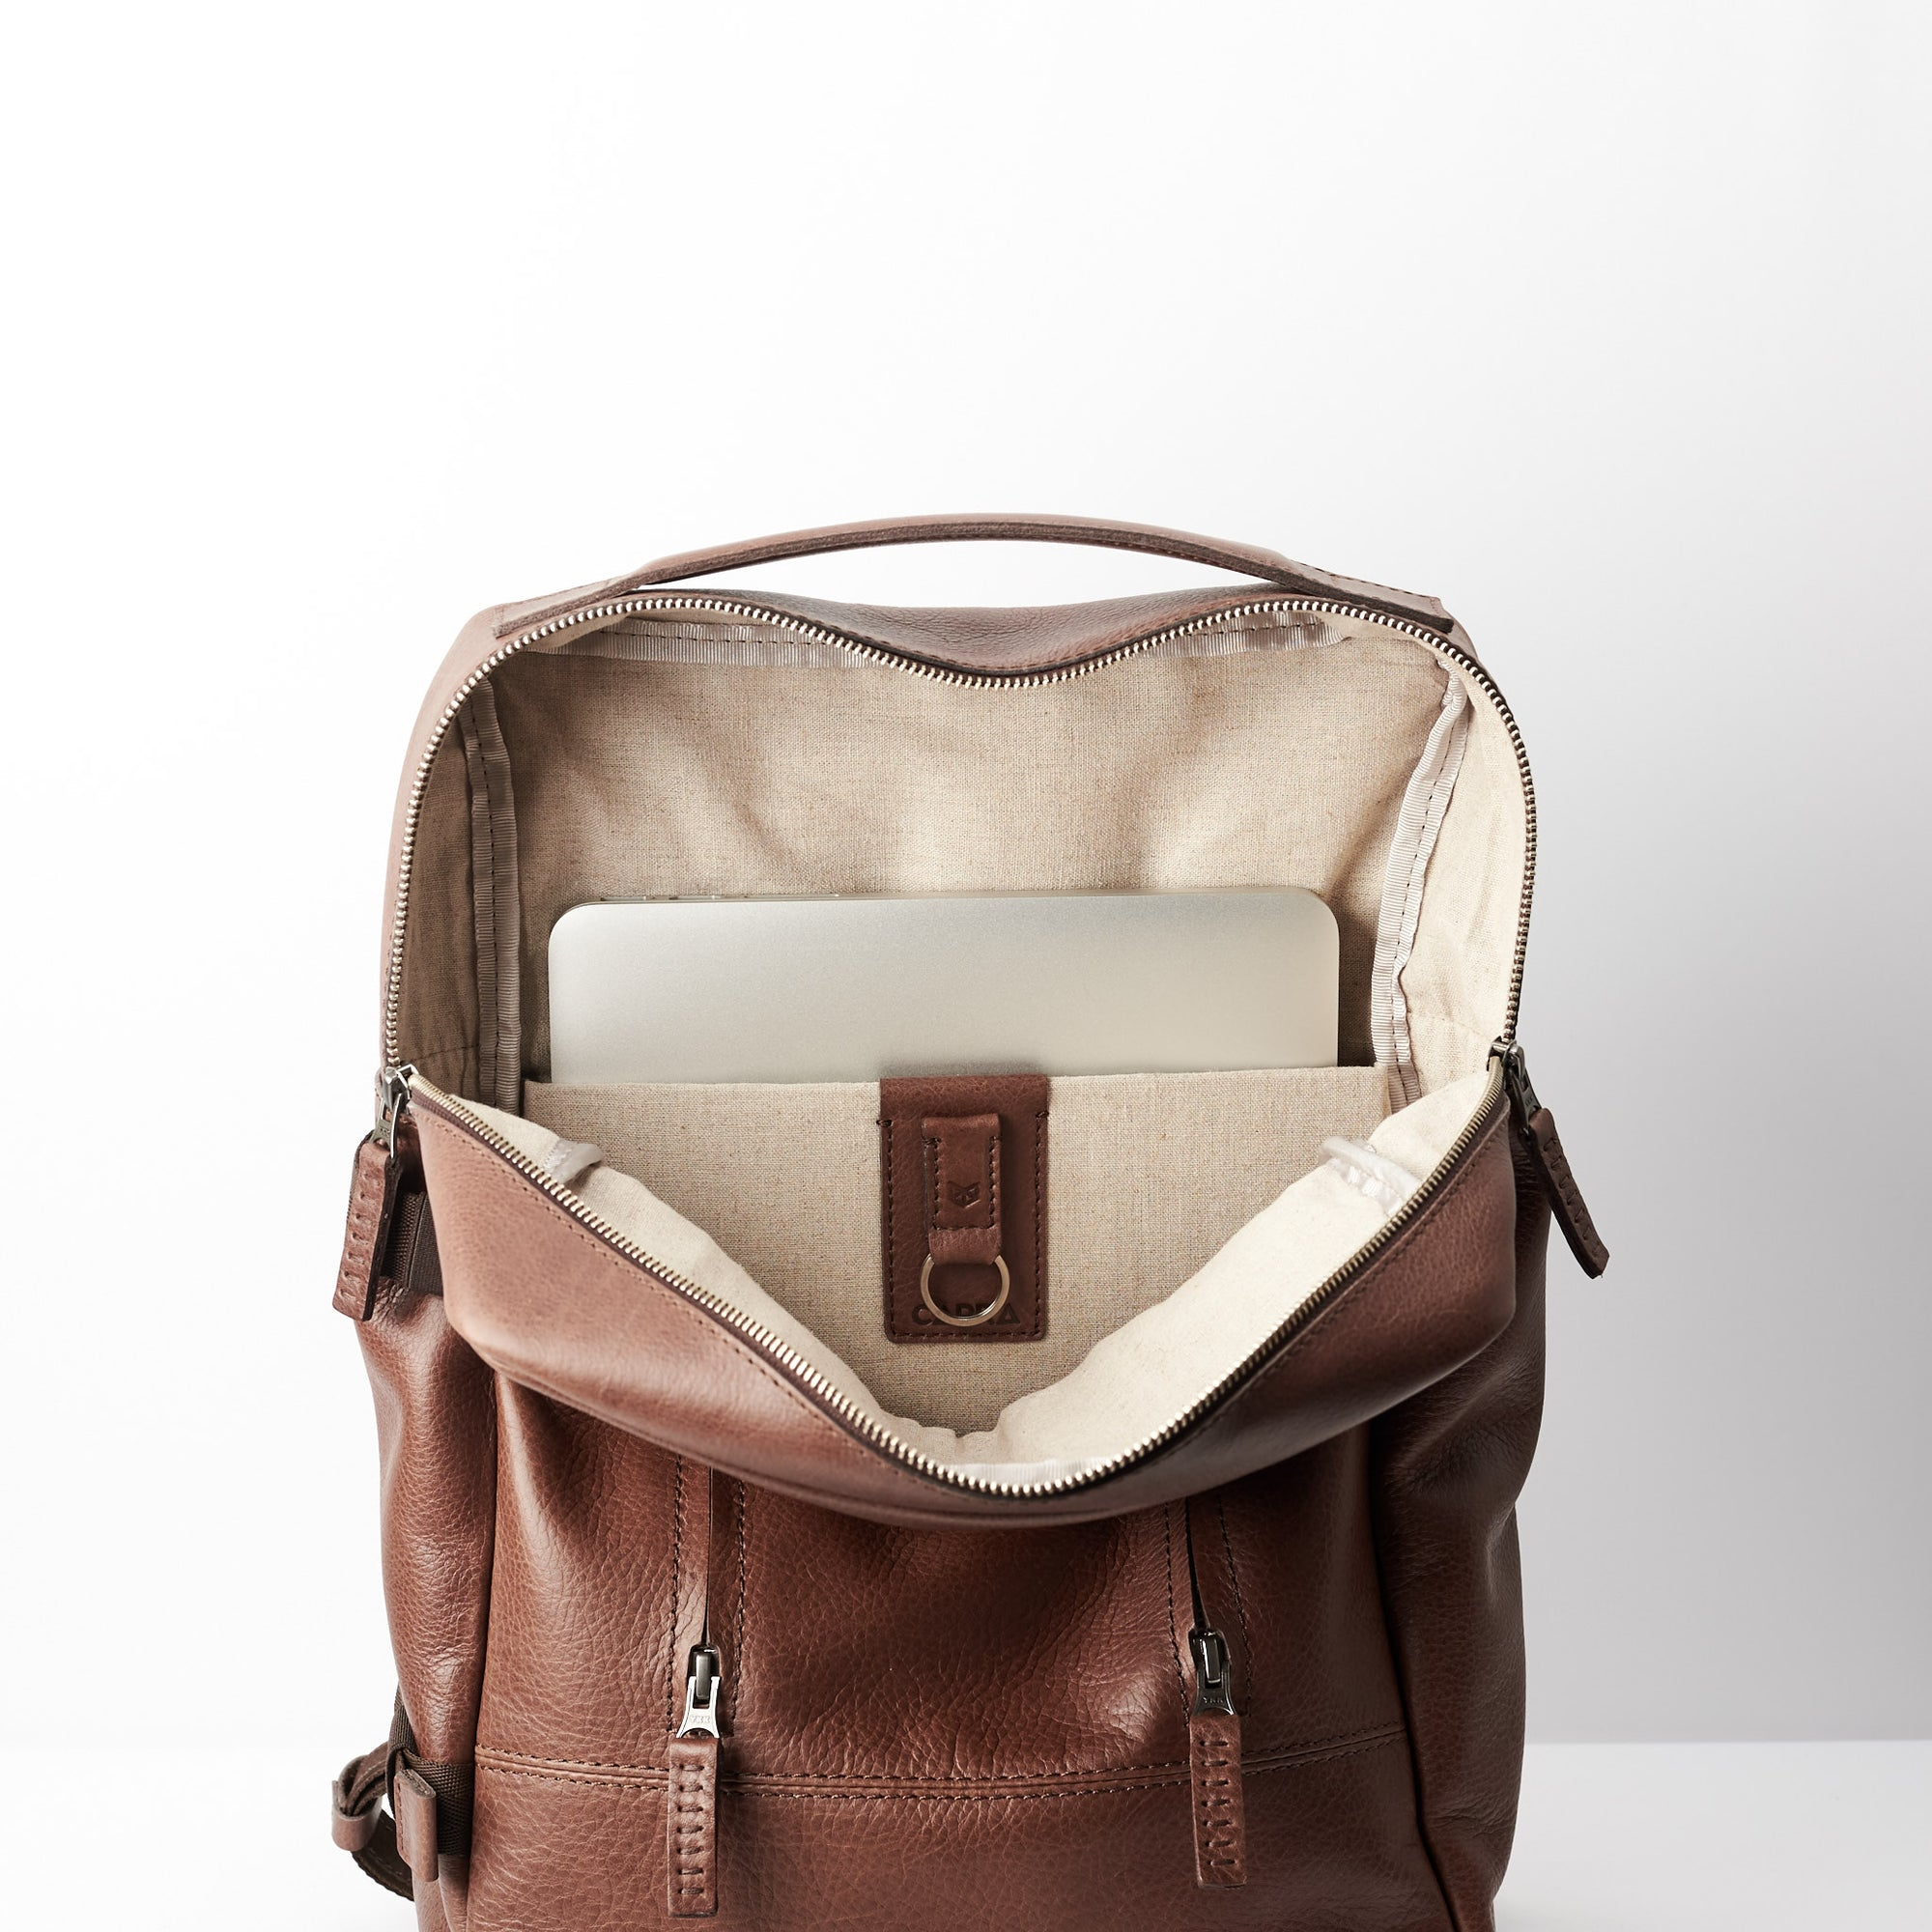 Brown Leather Backpack for men. Designer unique rucksack